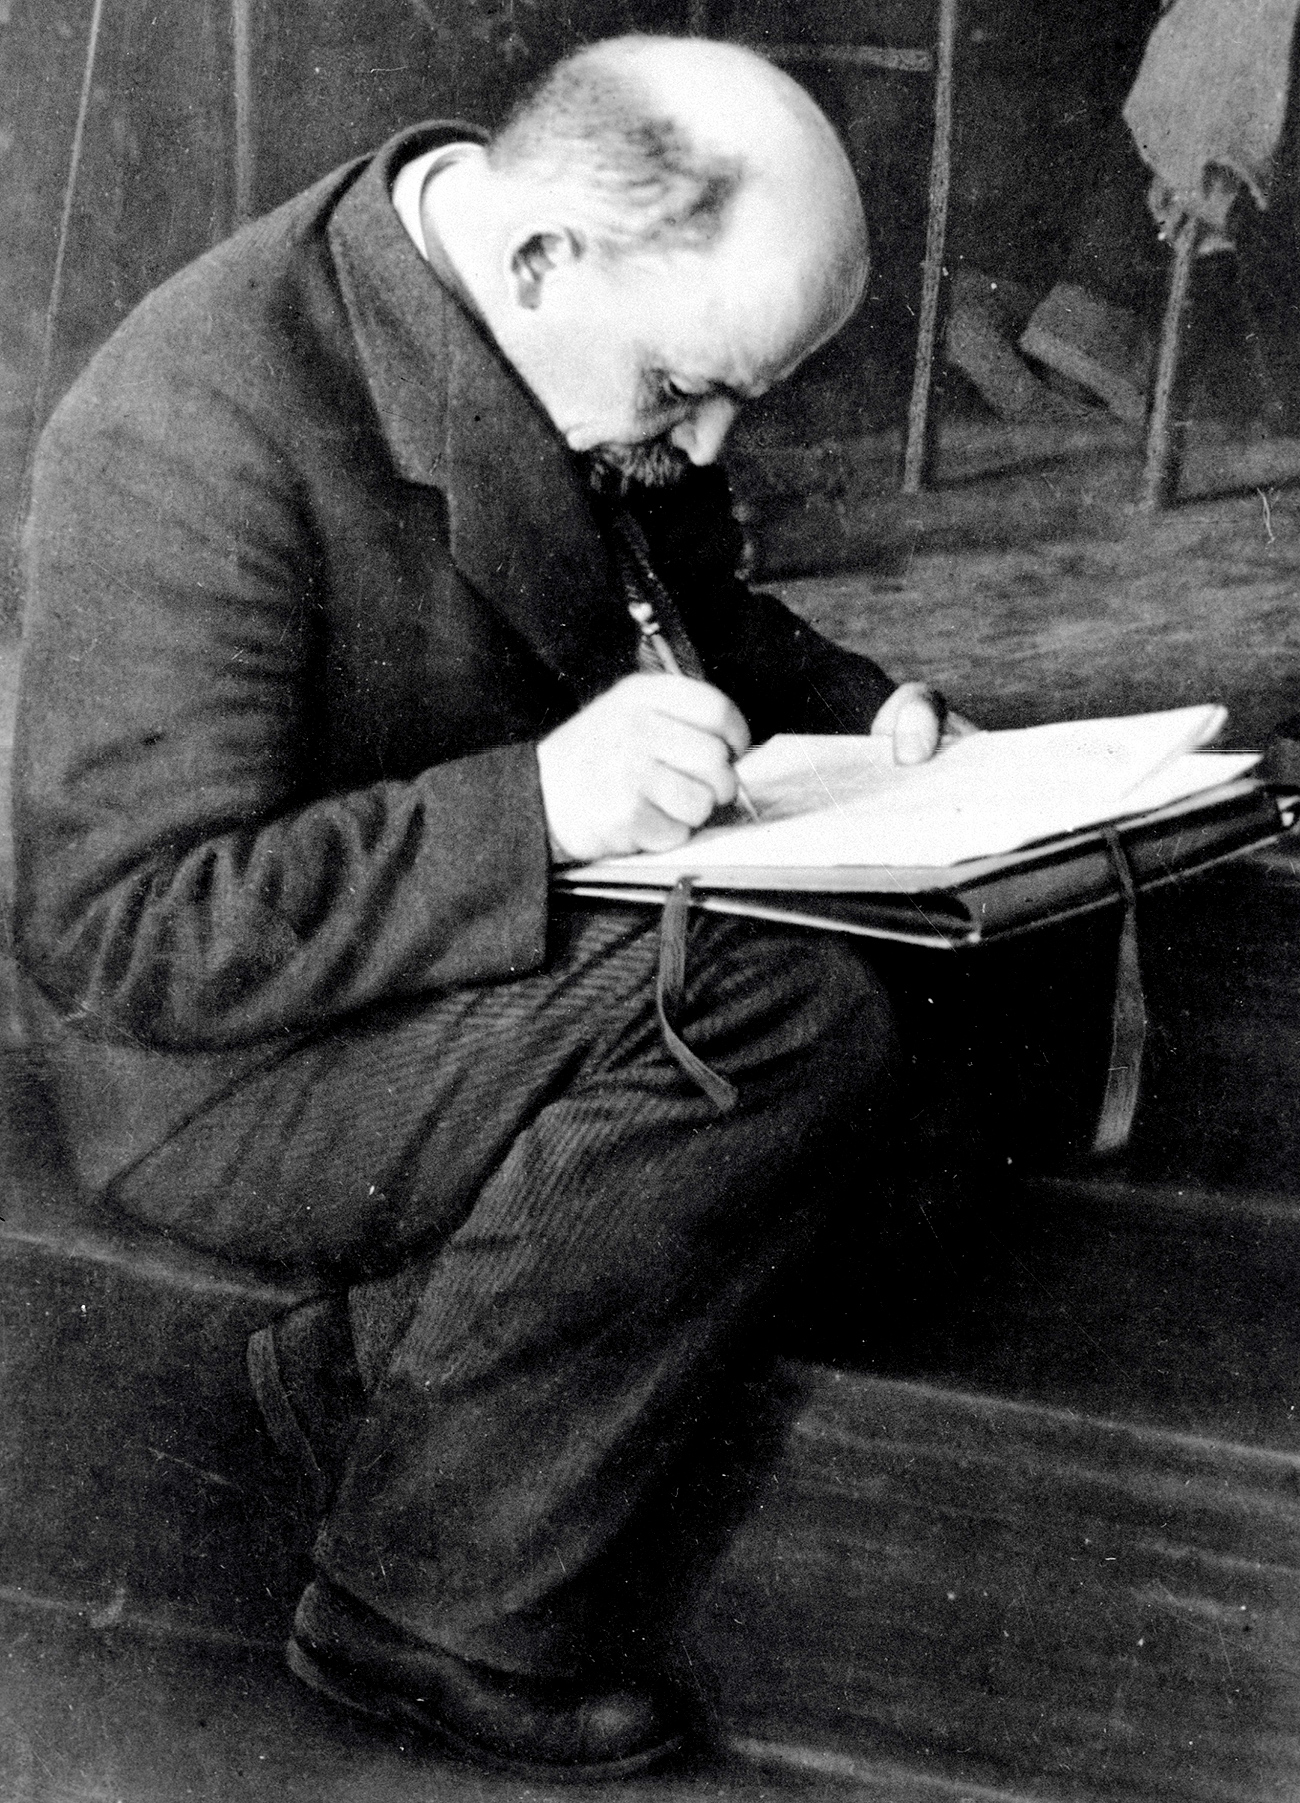 Viktor Bulla had special permission to take pictures of Vladimir Lenin's funeral in Moscow. // Vladimir Lenin making notes during the III Comintern Congress